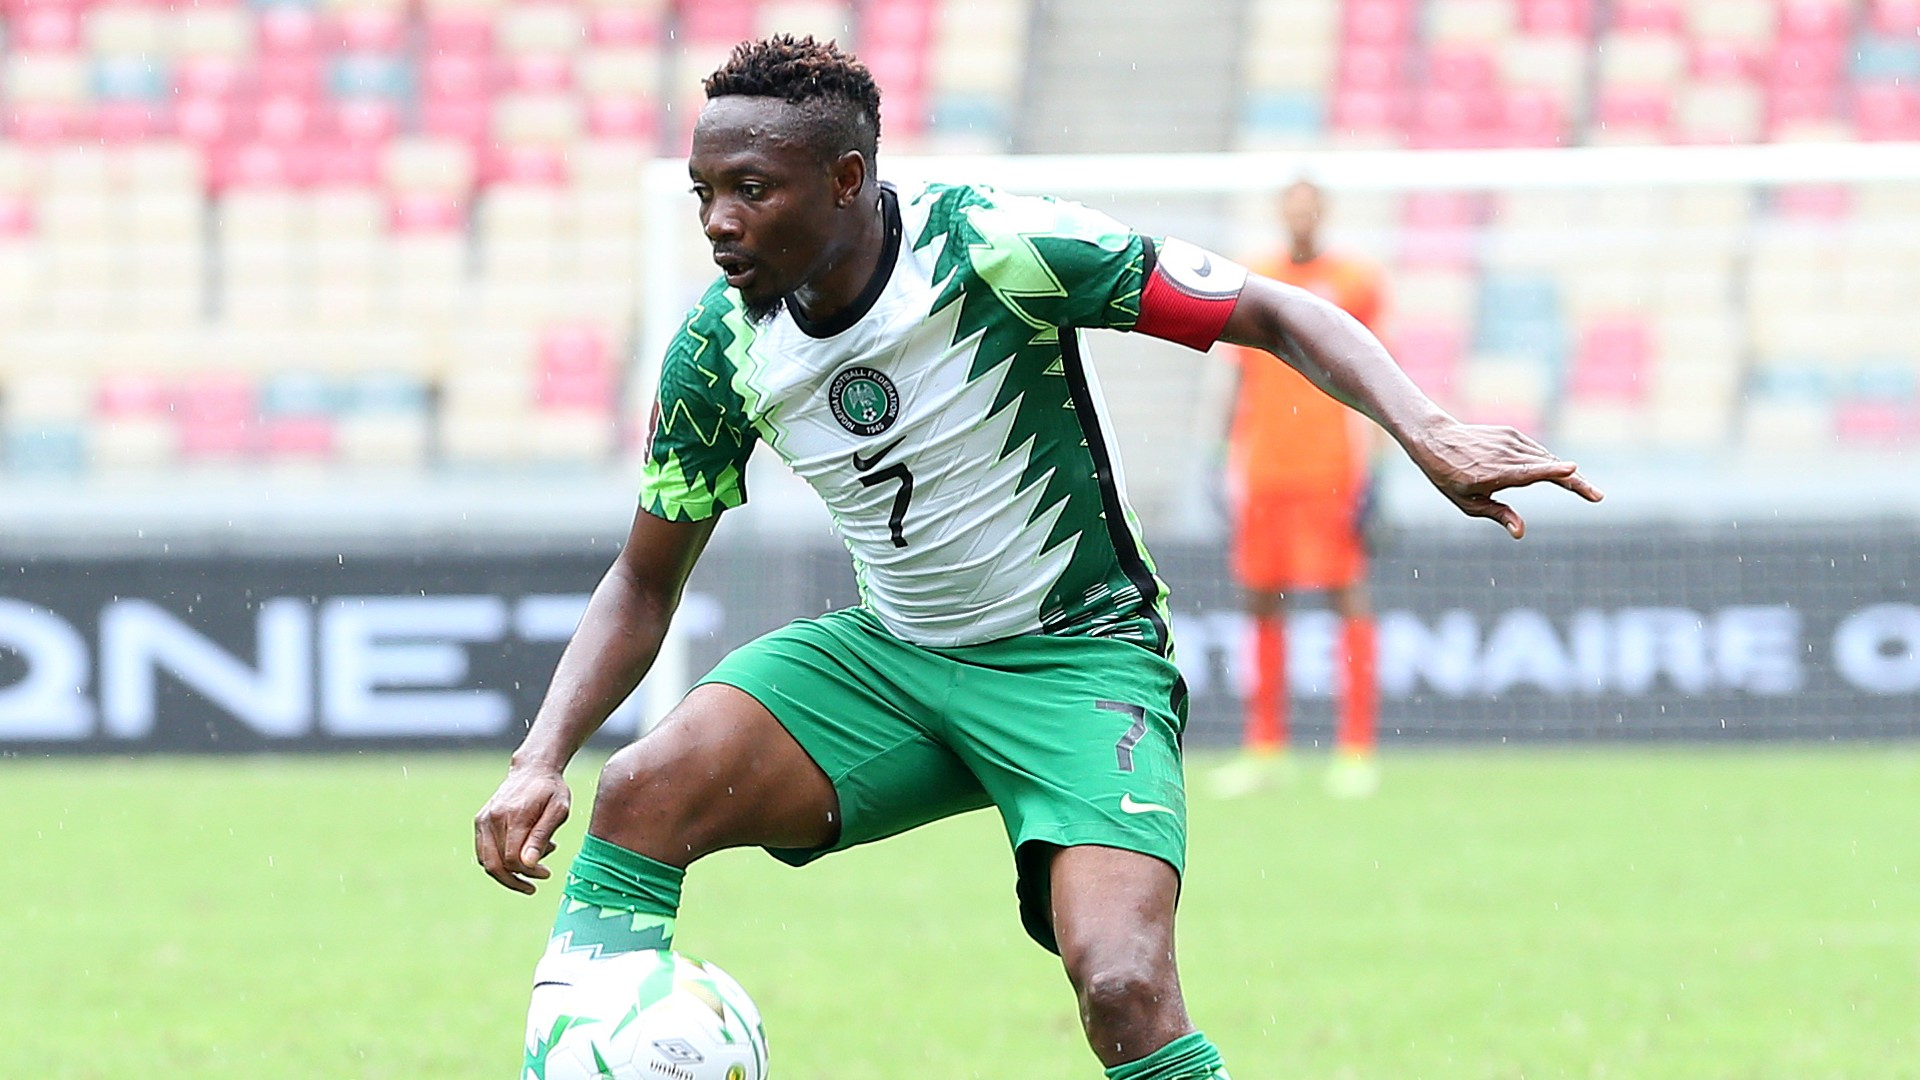 'Thank you so much' – Centurion Musa revels in milestone as Nigeria silence Central African Republic